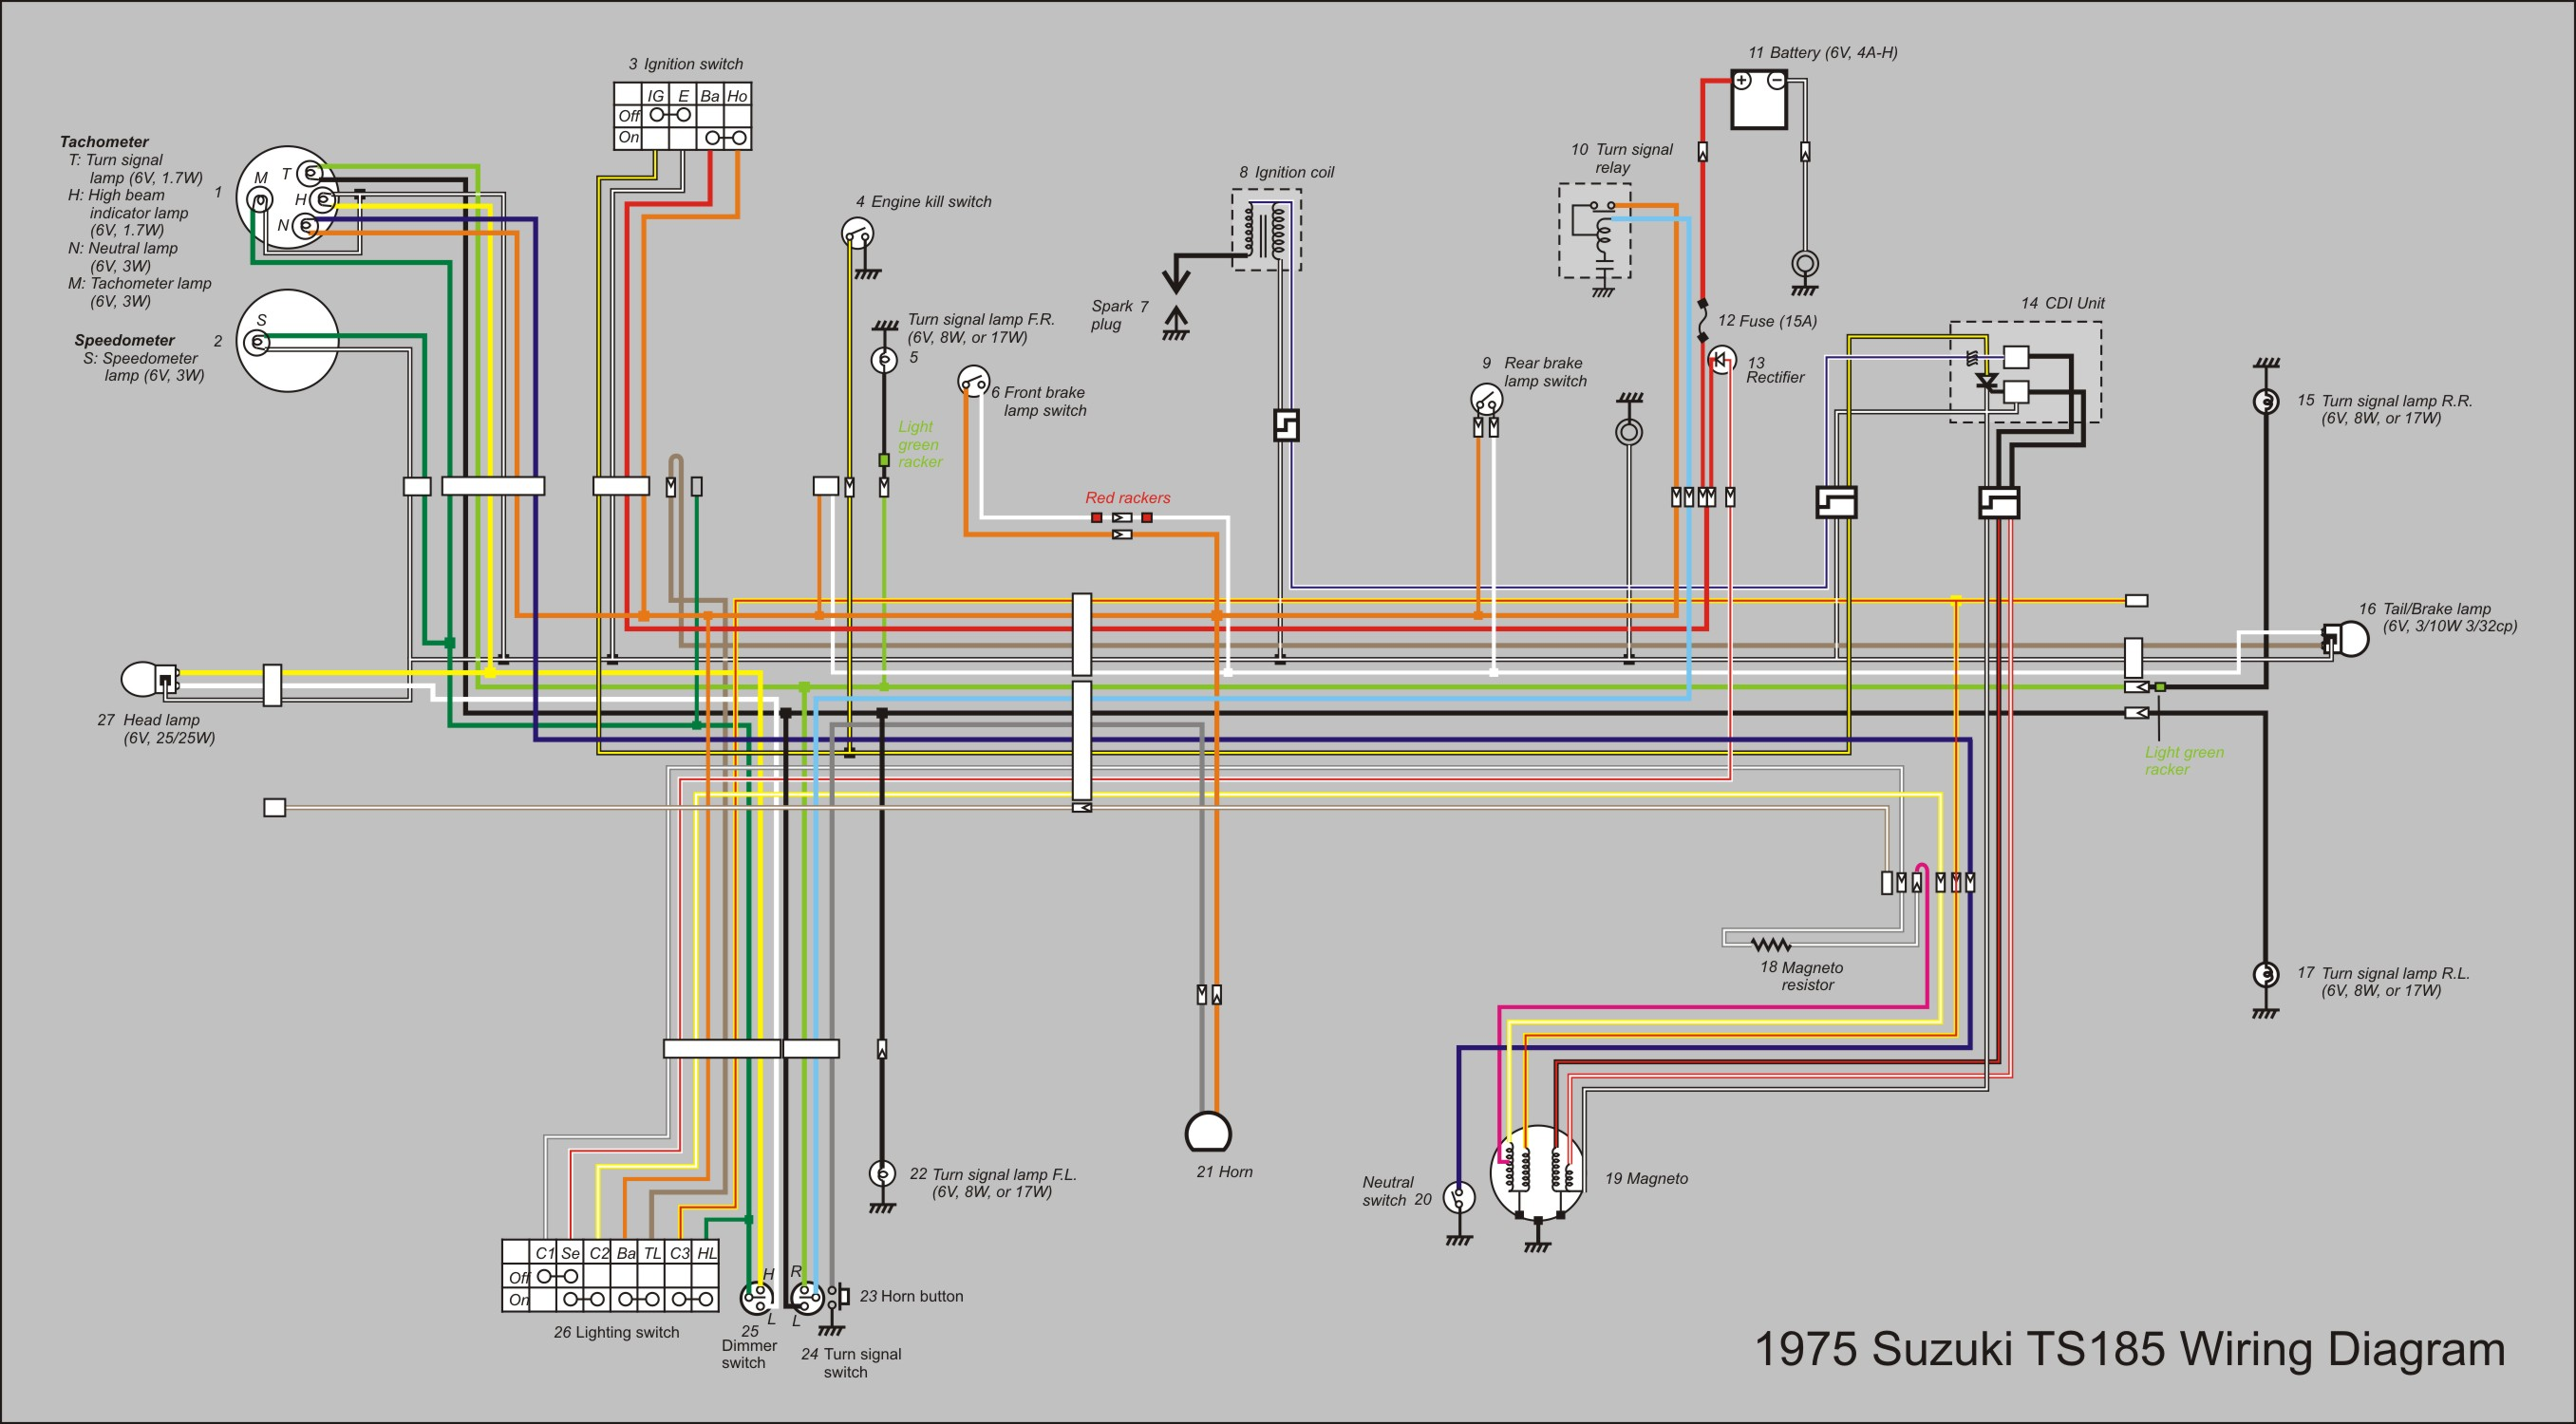 TS185_Wiring_Diagram_new file ts185 wiring diagram new jpg wikimedia commons wiring diagram at panicattacktreatment.co